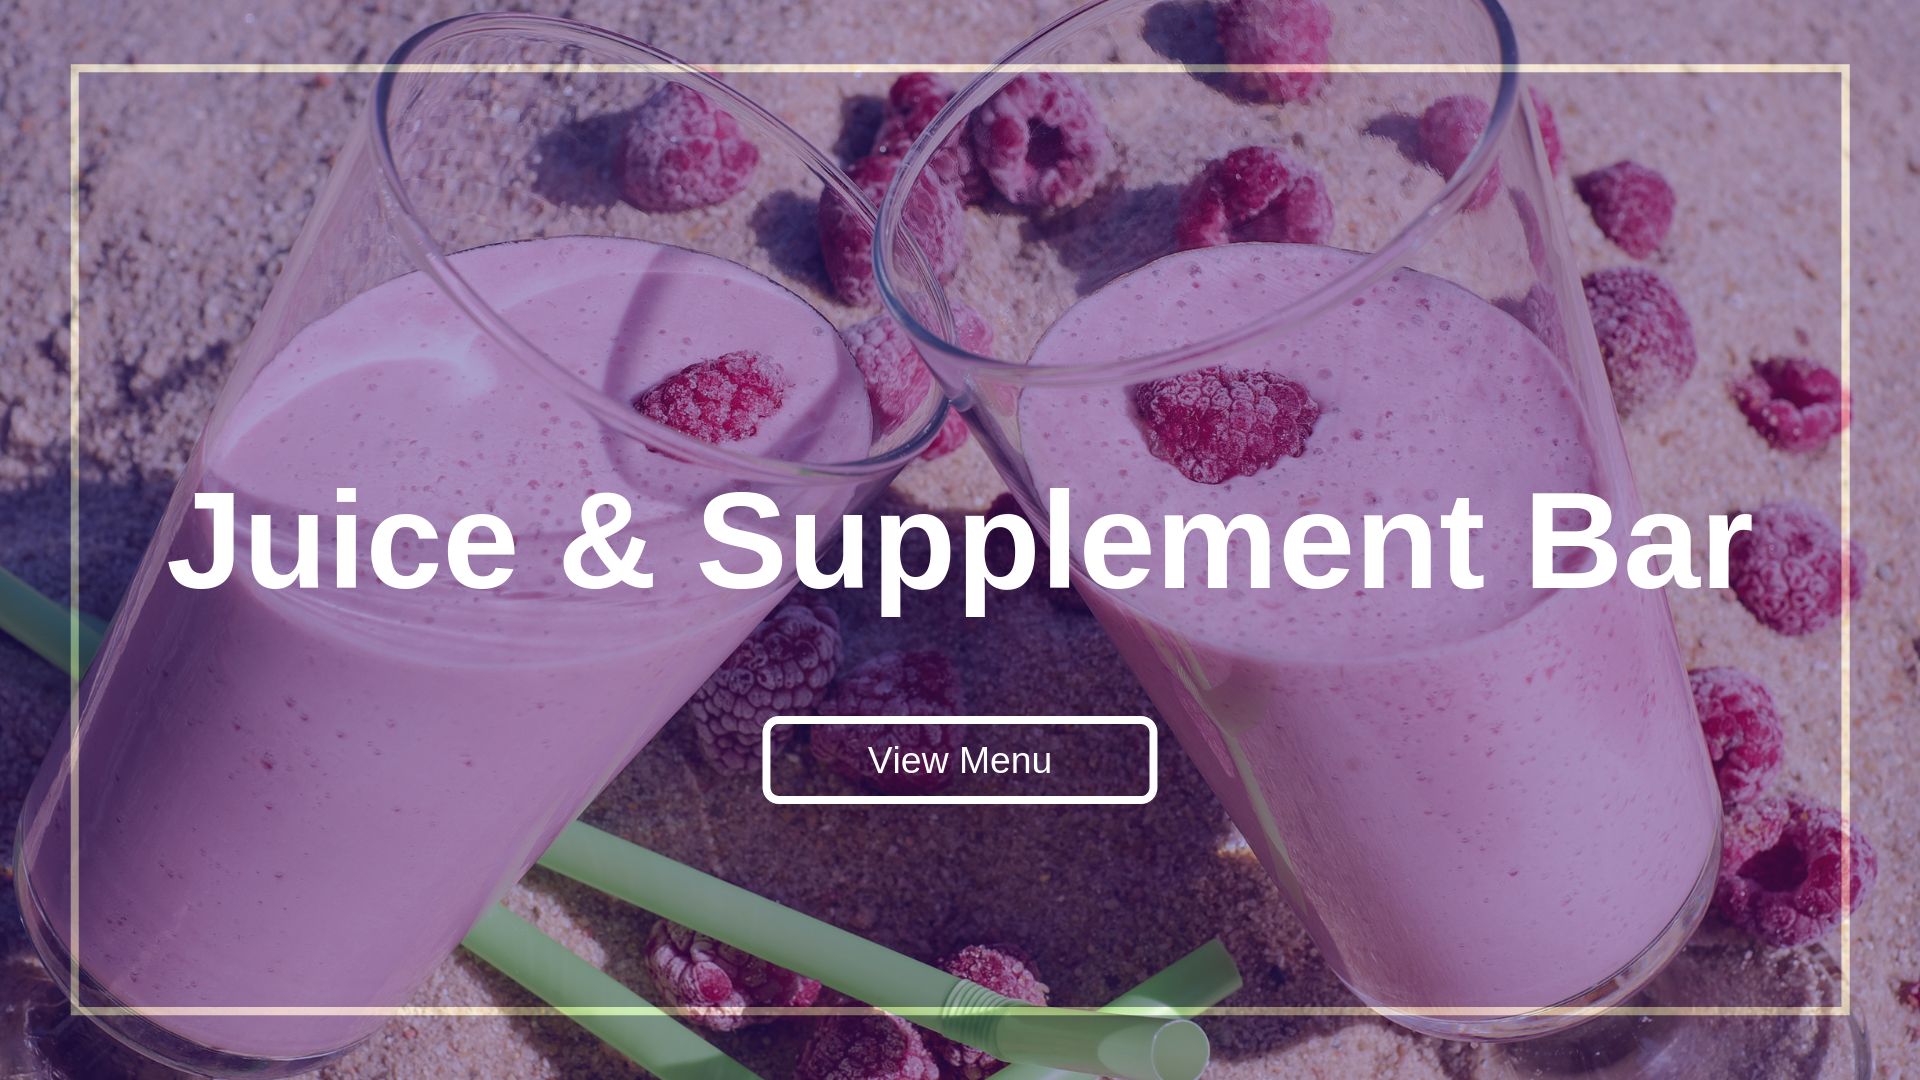 Juice and Supplement Bar